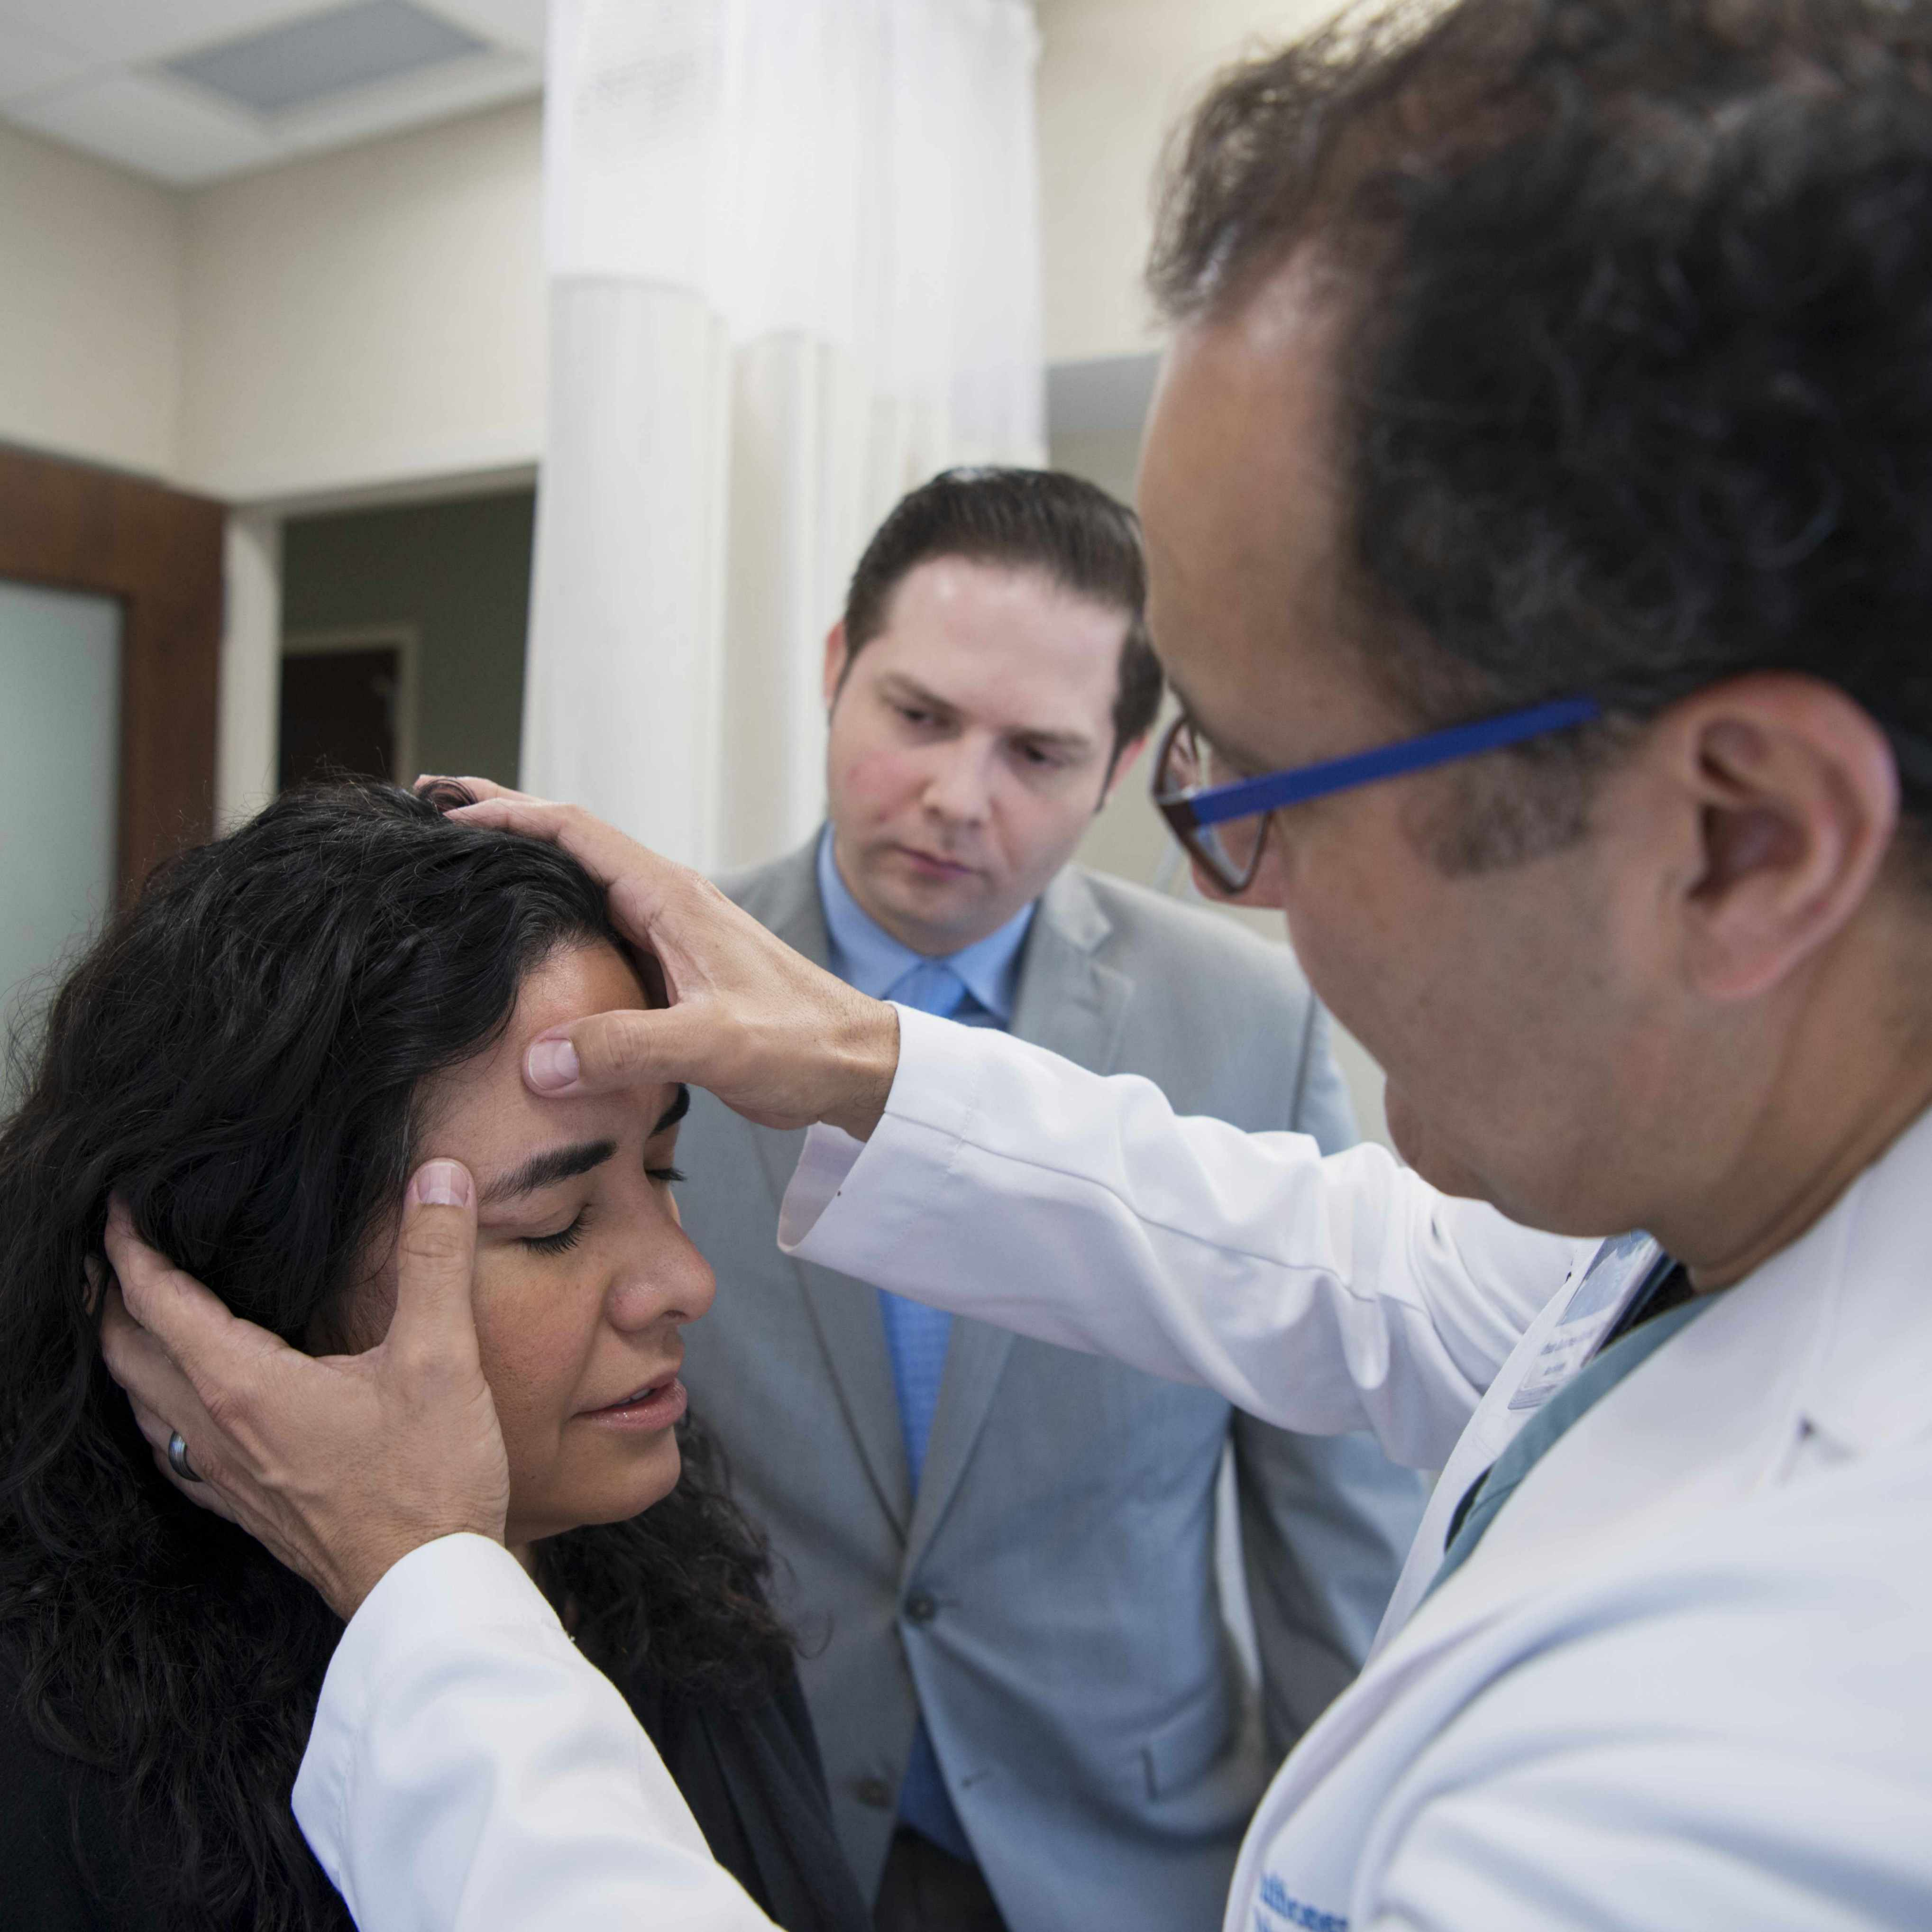 scarless brain surgery patient being examined by doctor